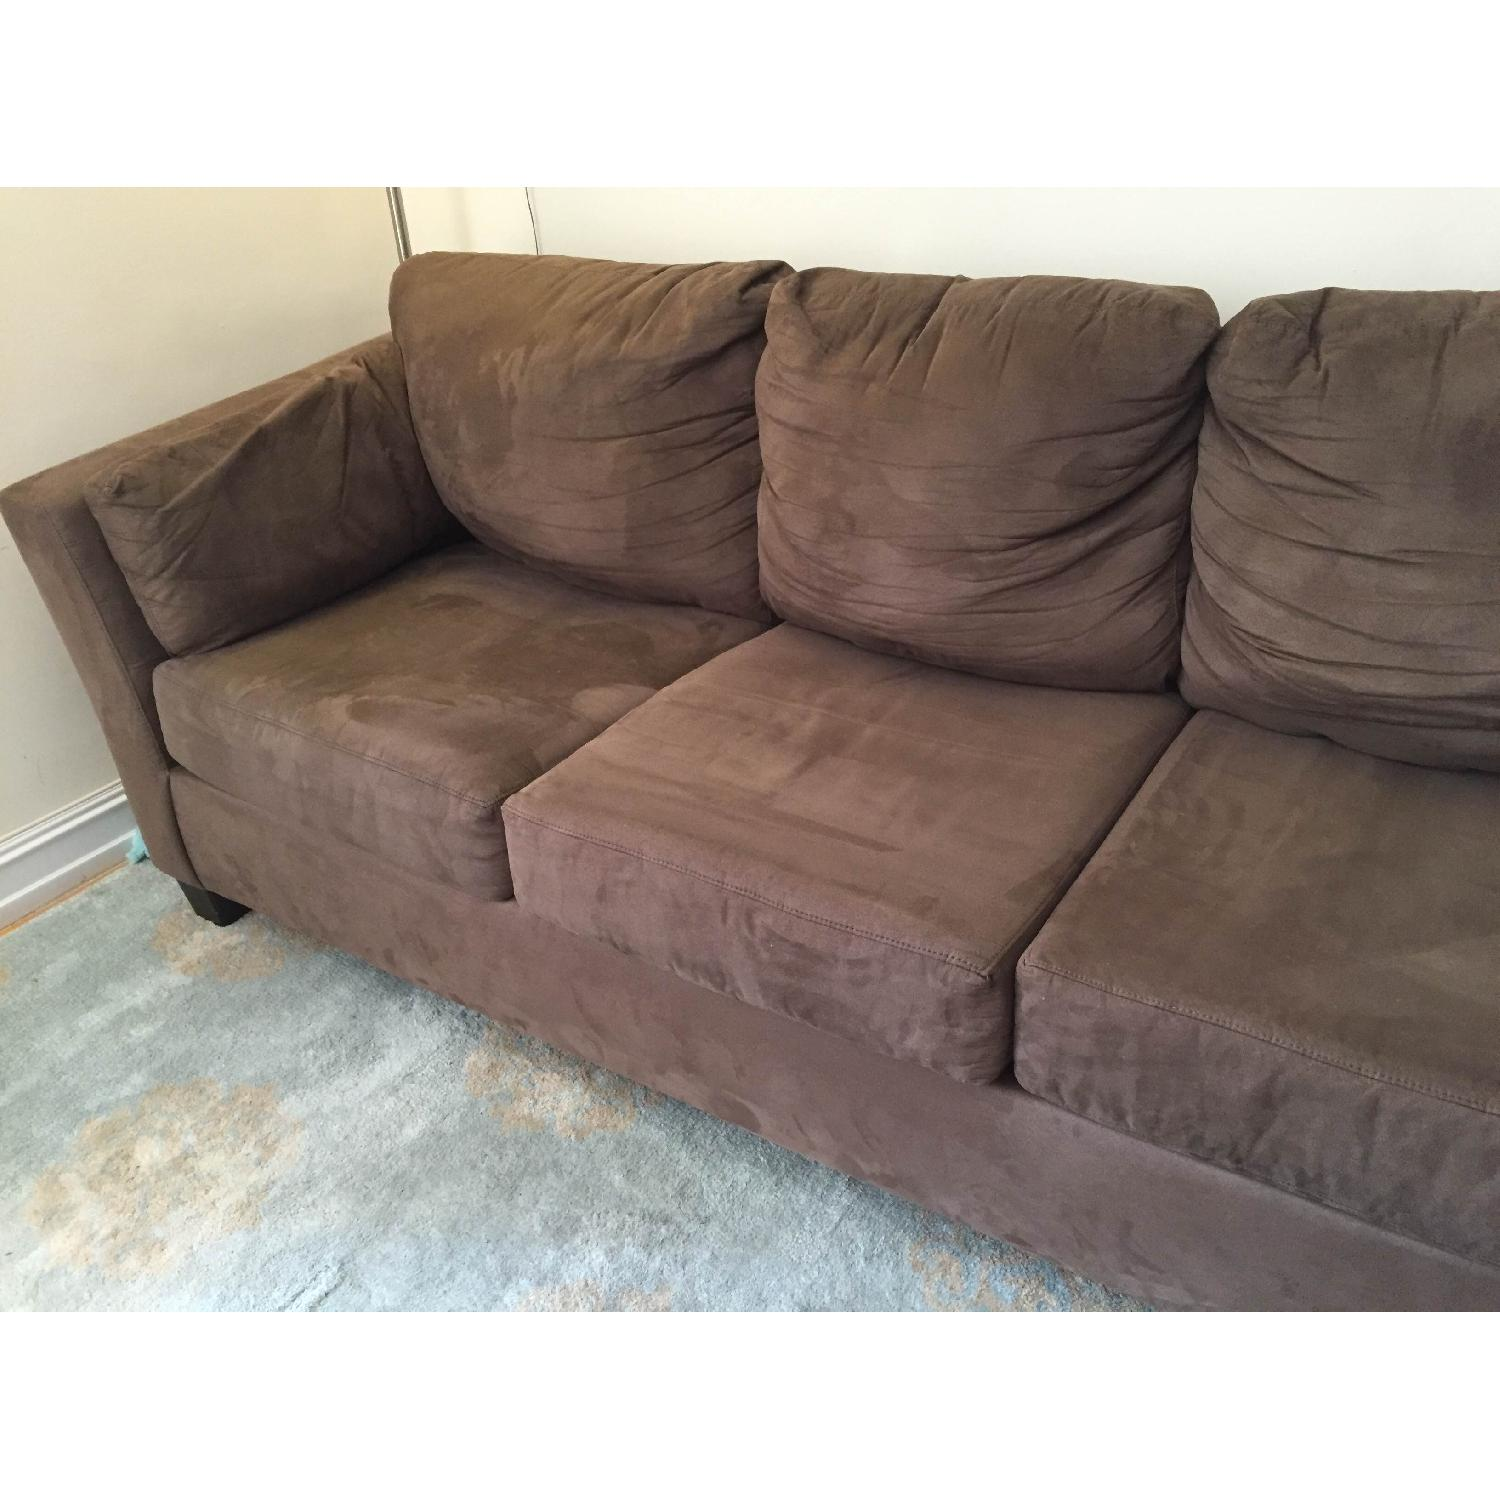 Bob's Sleeper Sectional Sofa - image-3